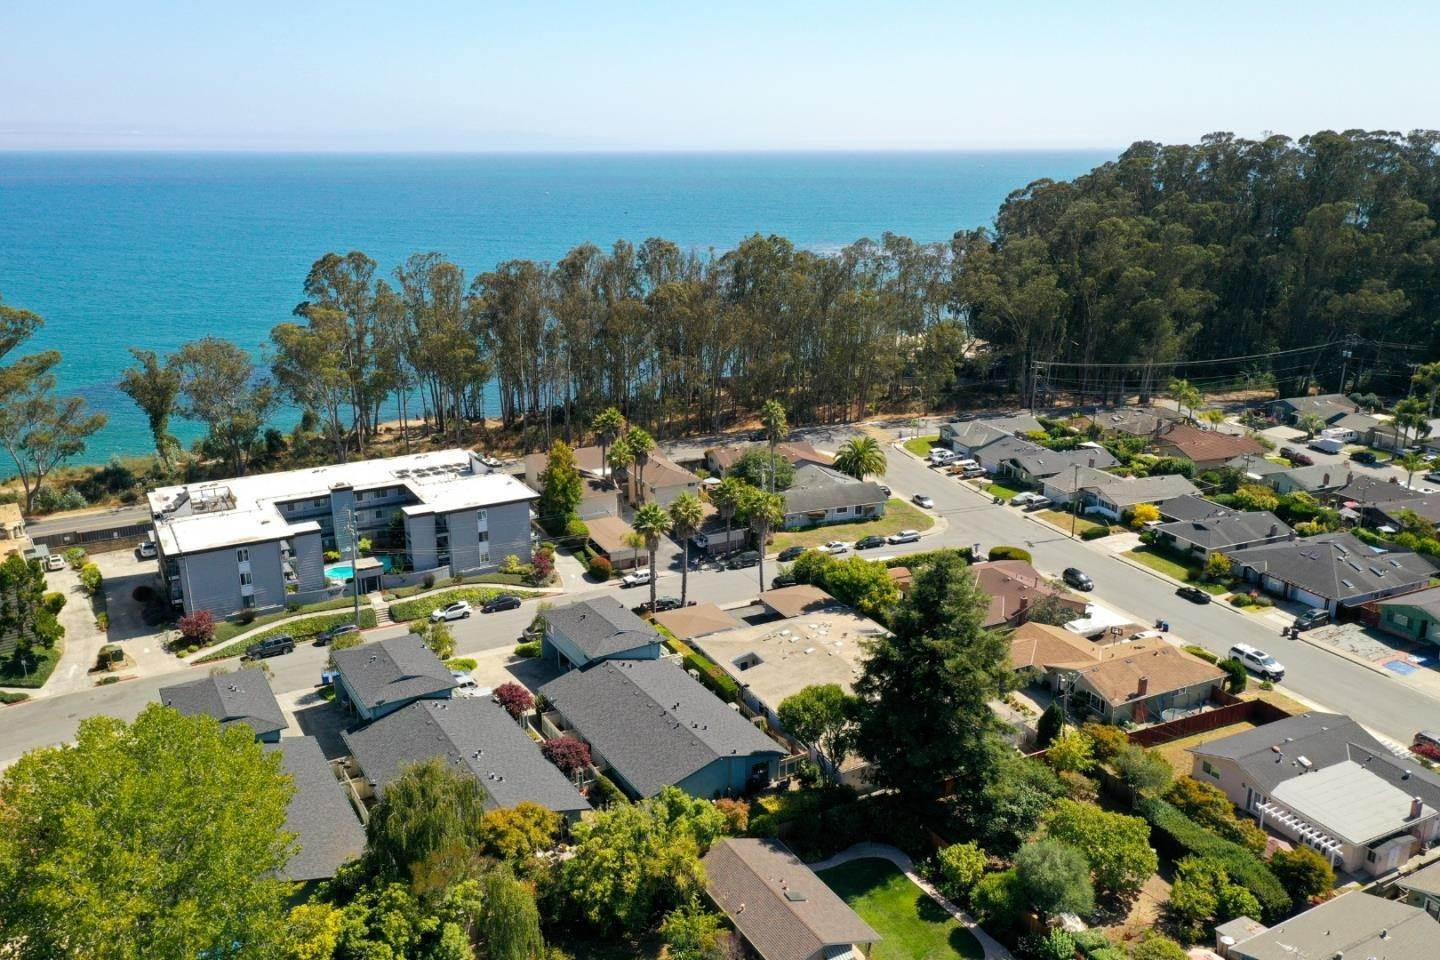 Multi-Family Homes for Sale at 809 Balboa Avenue Capitola, California 95010 United States